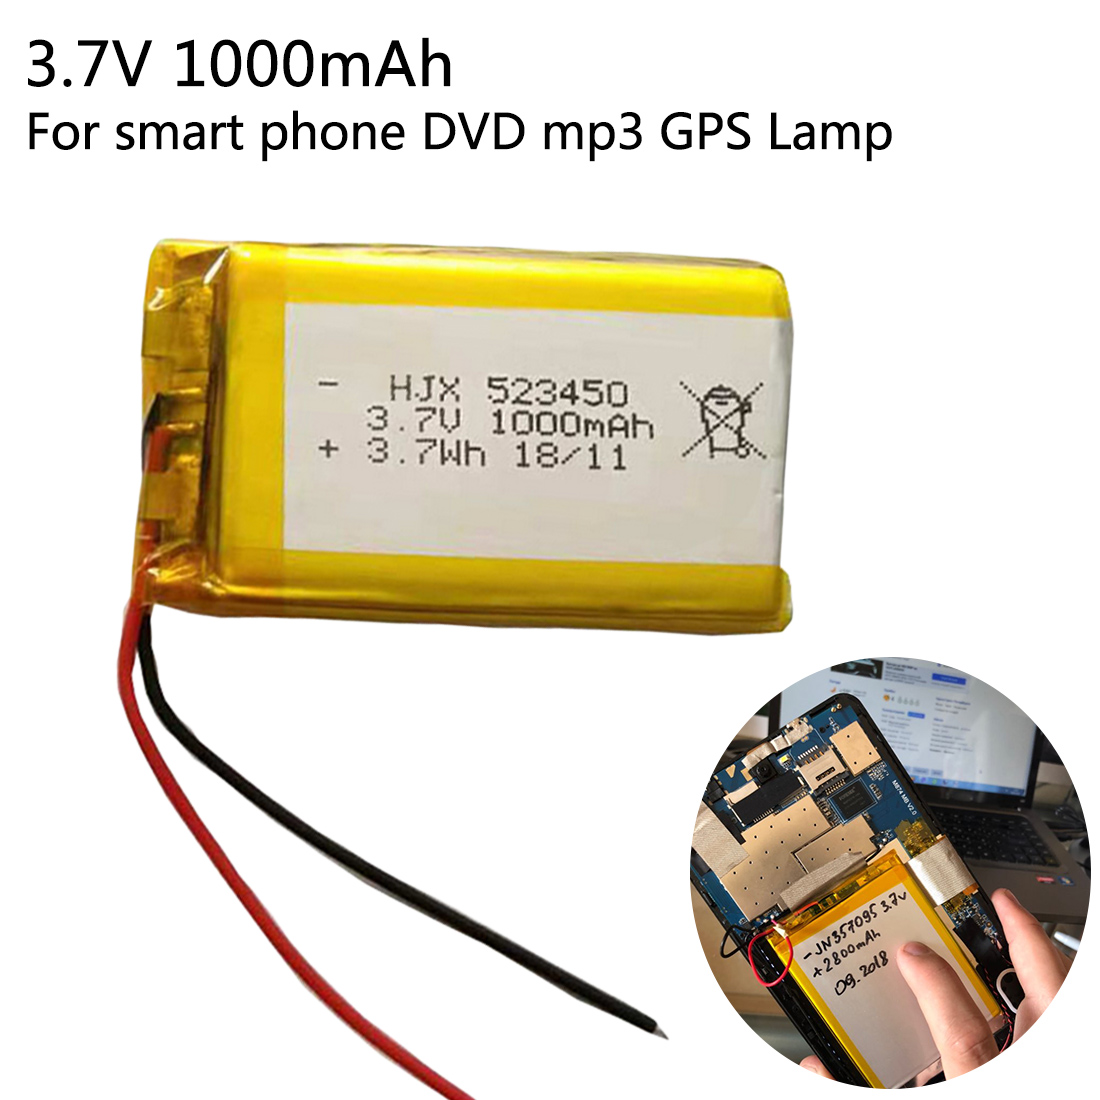 Replacement Batteries Batteries 1000mah Lithium-ion Polymer Battery 3.7 V 102050 For Mp3 Mp4 Mp5 Gps Ktv Household Battery Amplifier Audio Computer Microphone